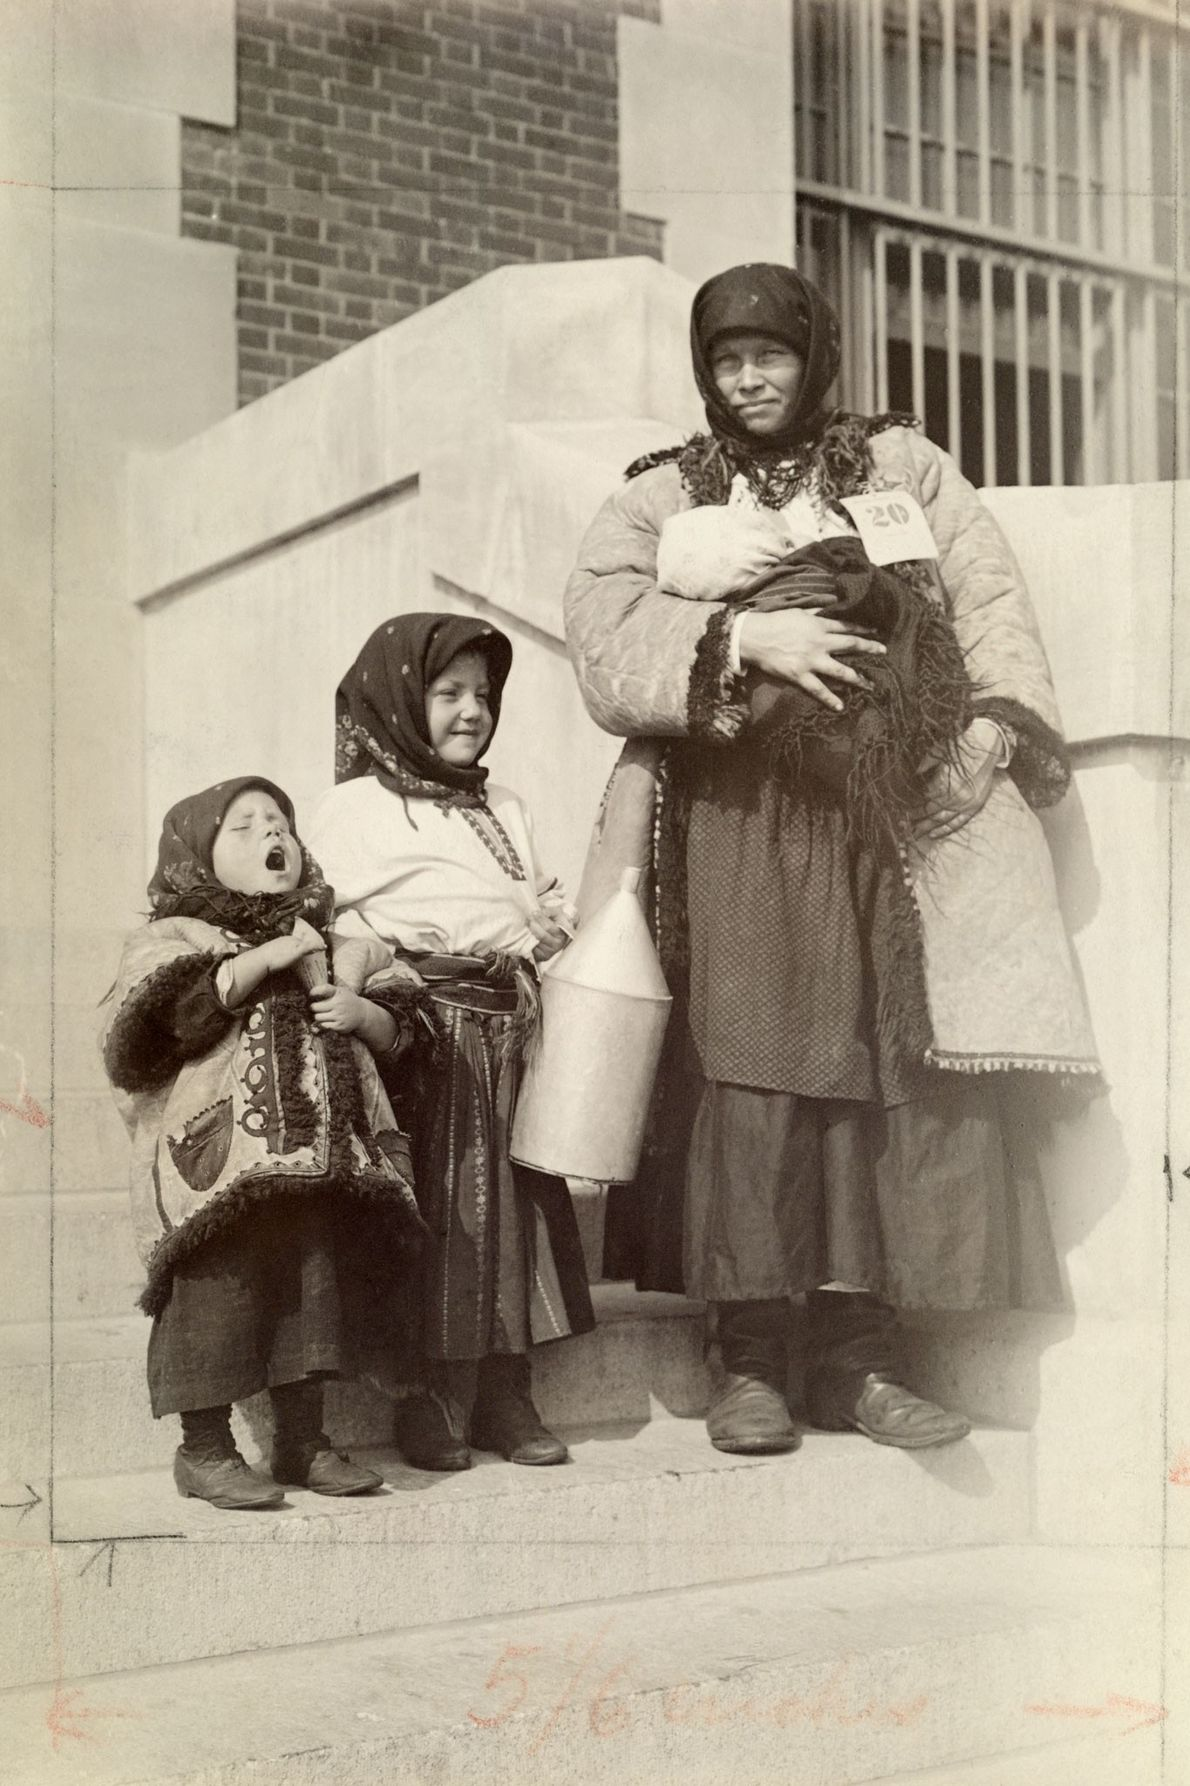 A Russian immigrant to the United States stands with her three children.